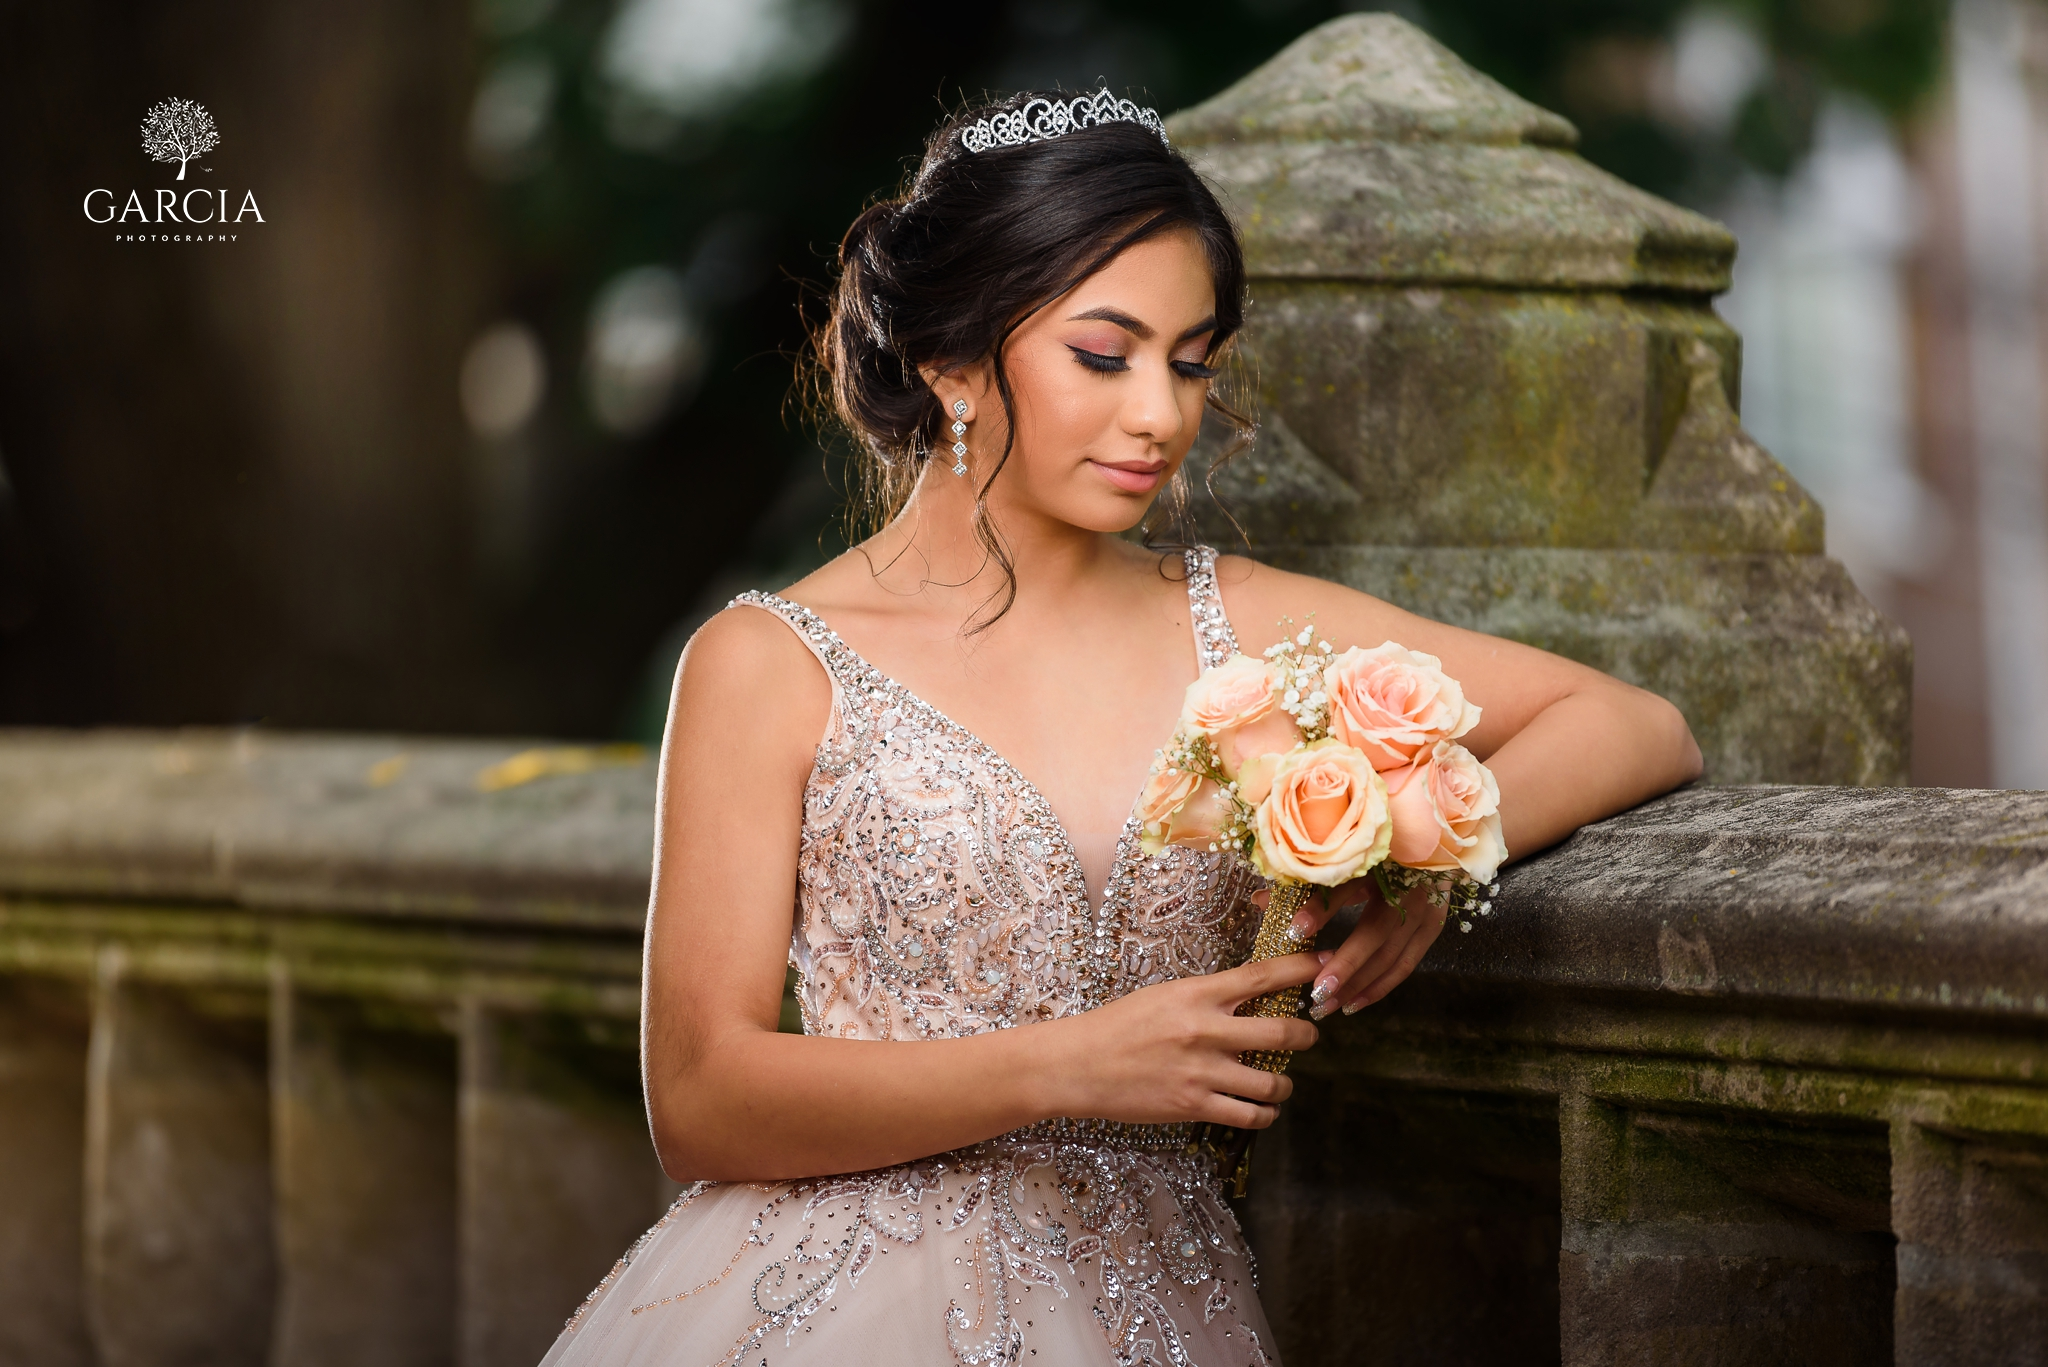 Nicole-Quince-Session-Garcia-Photography-4742.jpg